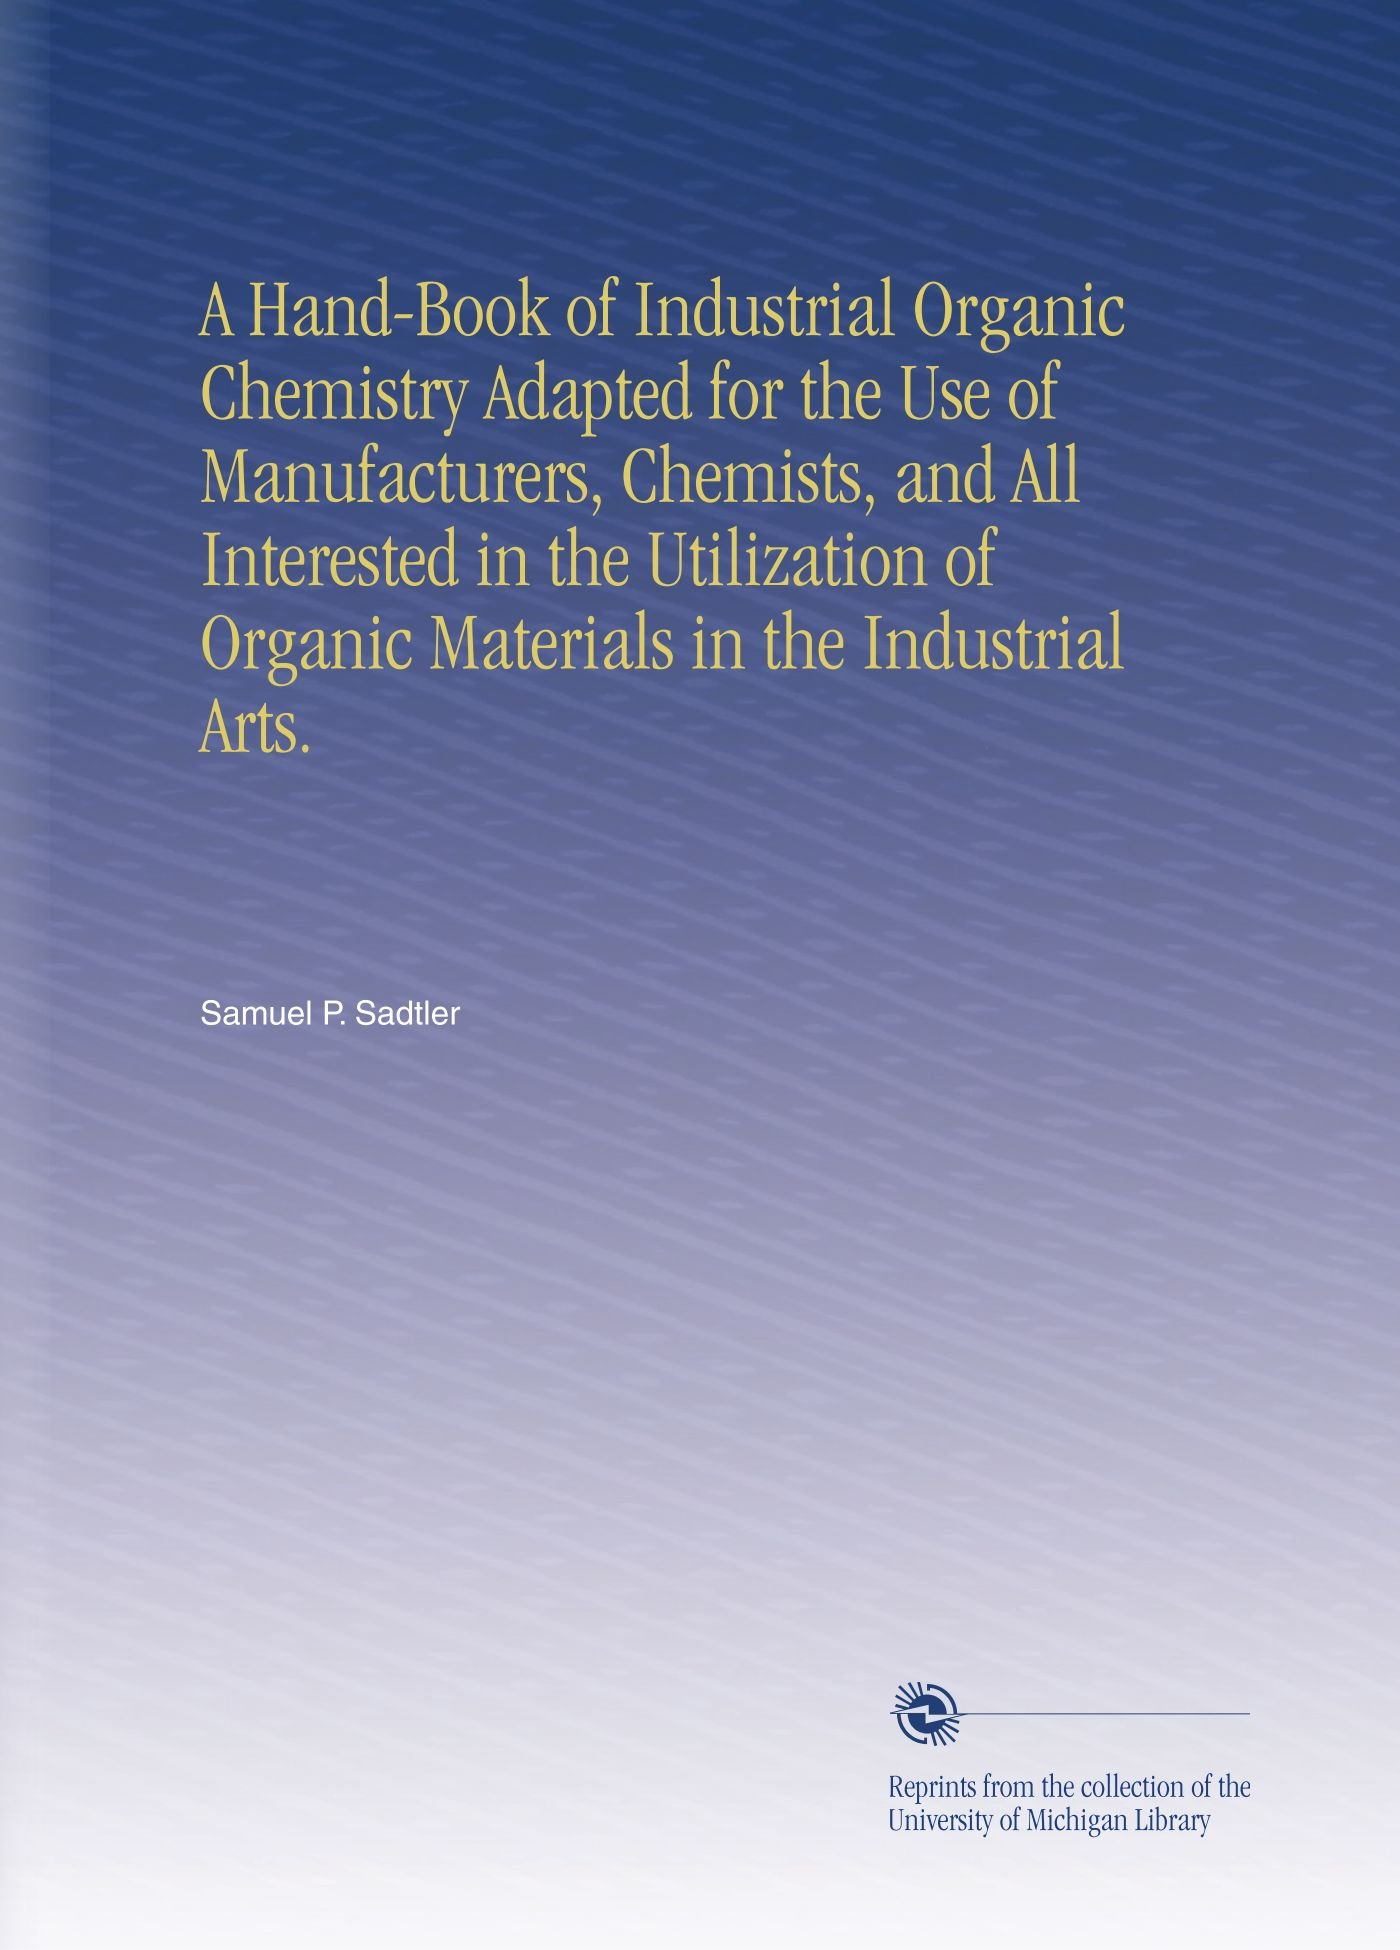 A Hand-Book of Industrial Organic Chemistry Adapted for the Use of Manufacturers, Chemists, and All Interested in the Utilization of Organic Materials in the Industrial Arts. pdf epub